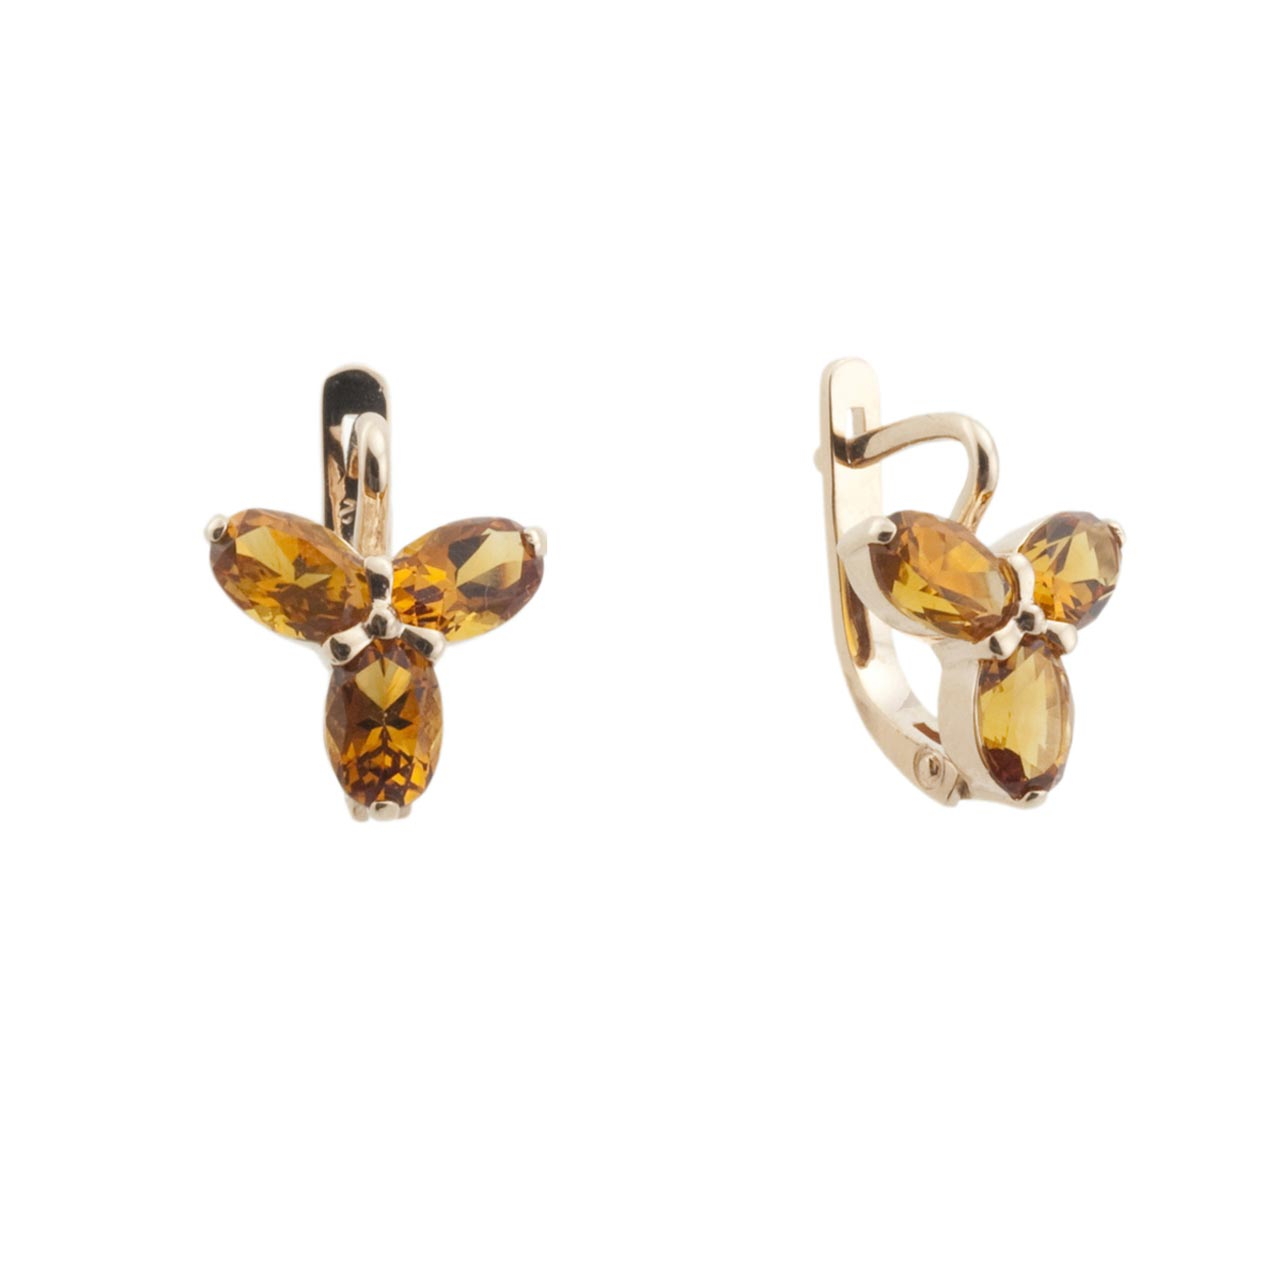 Citrine rose gold earrings 1